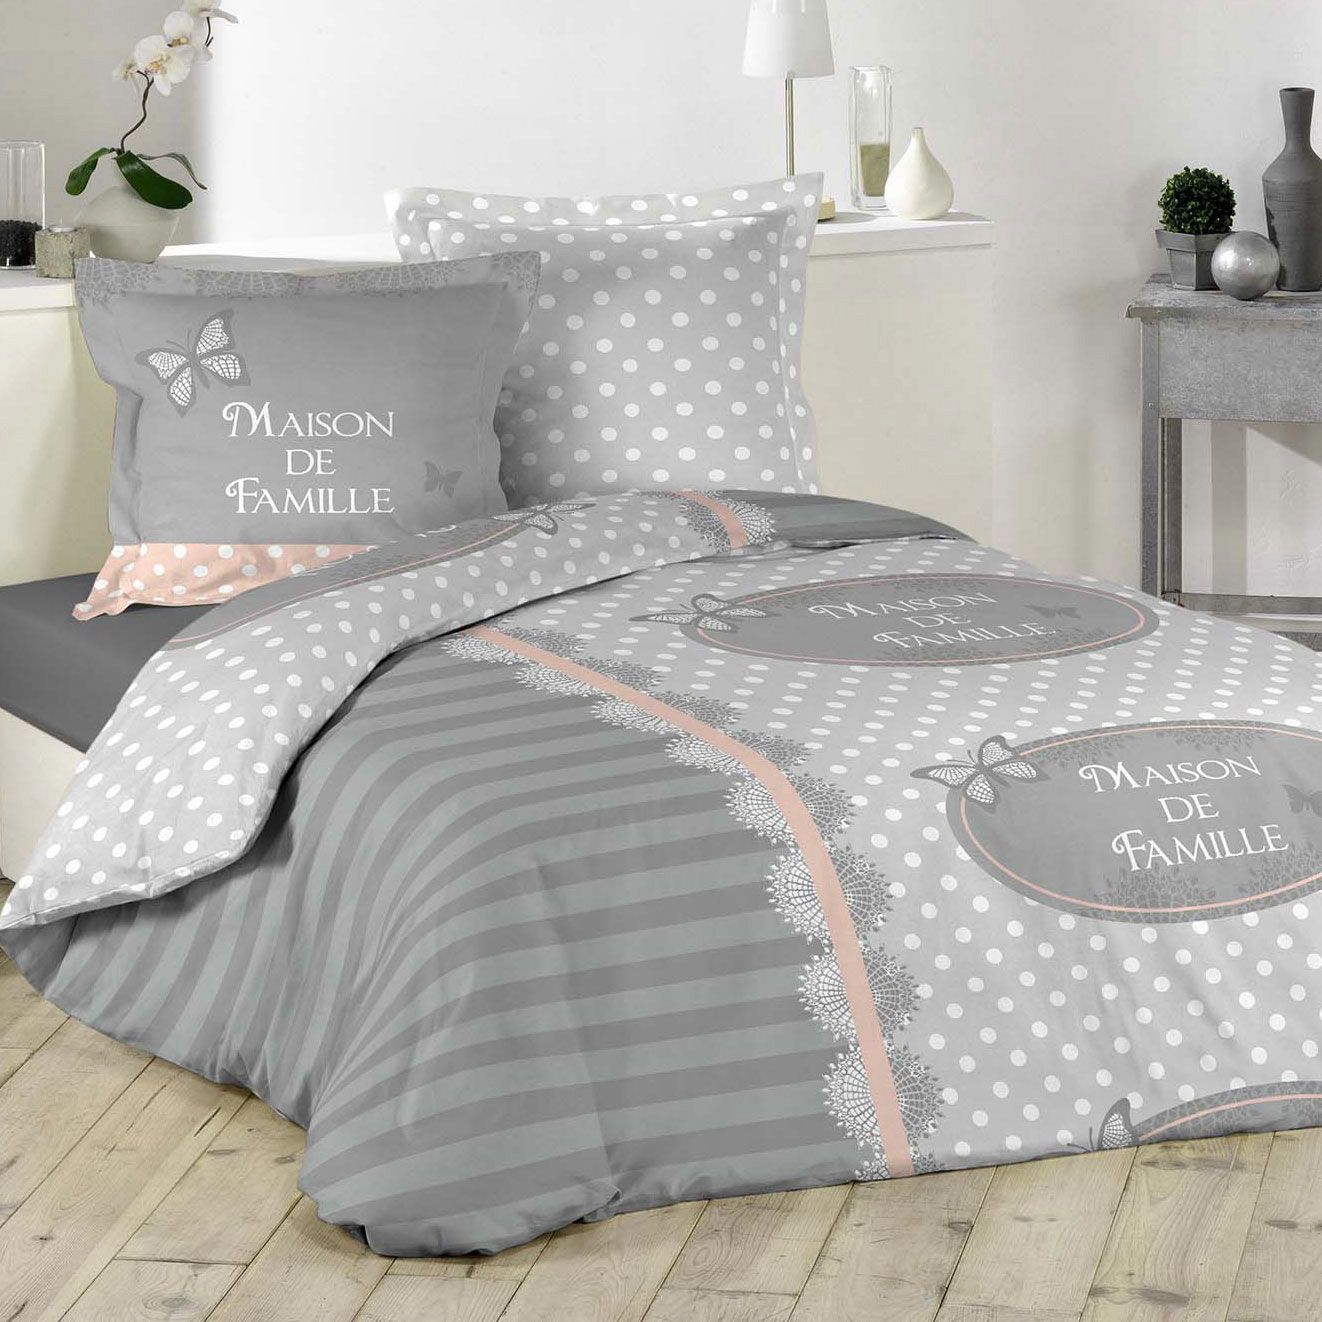 housse de couette et deux taies lili coton 200 cm gris clair housse de couette eminza. Black Bedroom Furniture Sets. Home Design Ideas